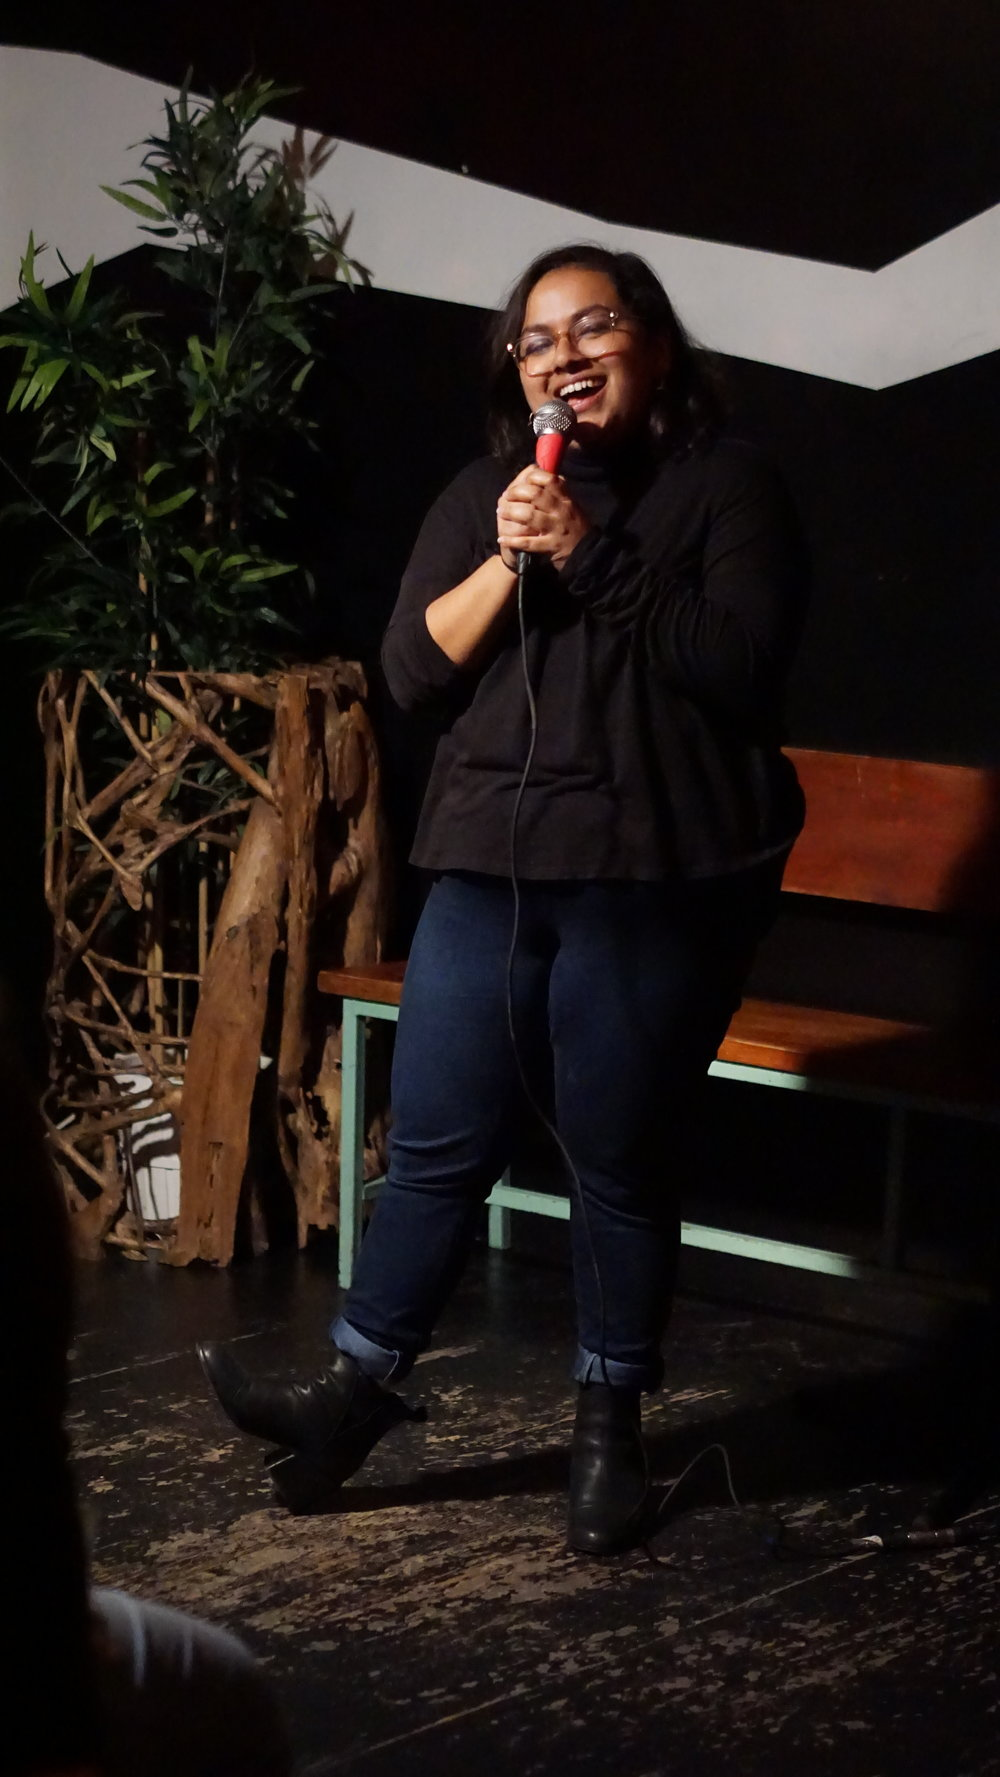 """Isha Patnaik performs in front of an audience of 200 at Tufts Comedy Blastoff. She admits that this outfit was a """"fashion risk"""" but still plans on repeating it."""